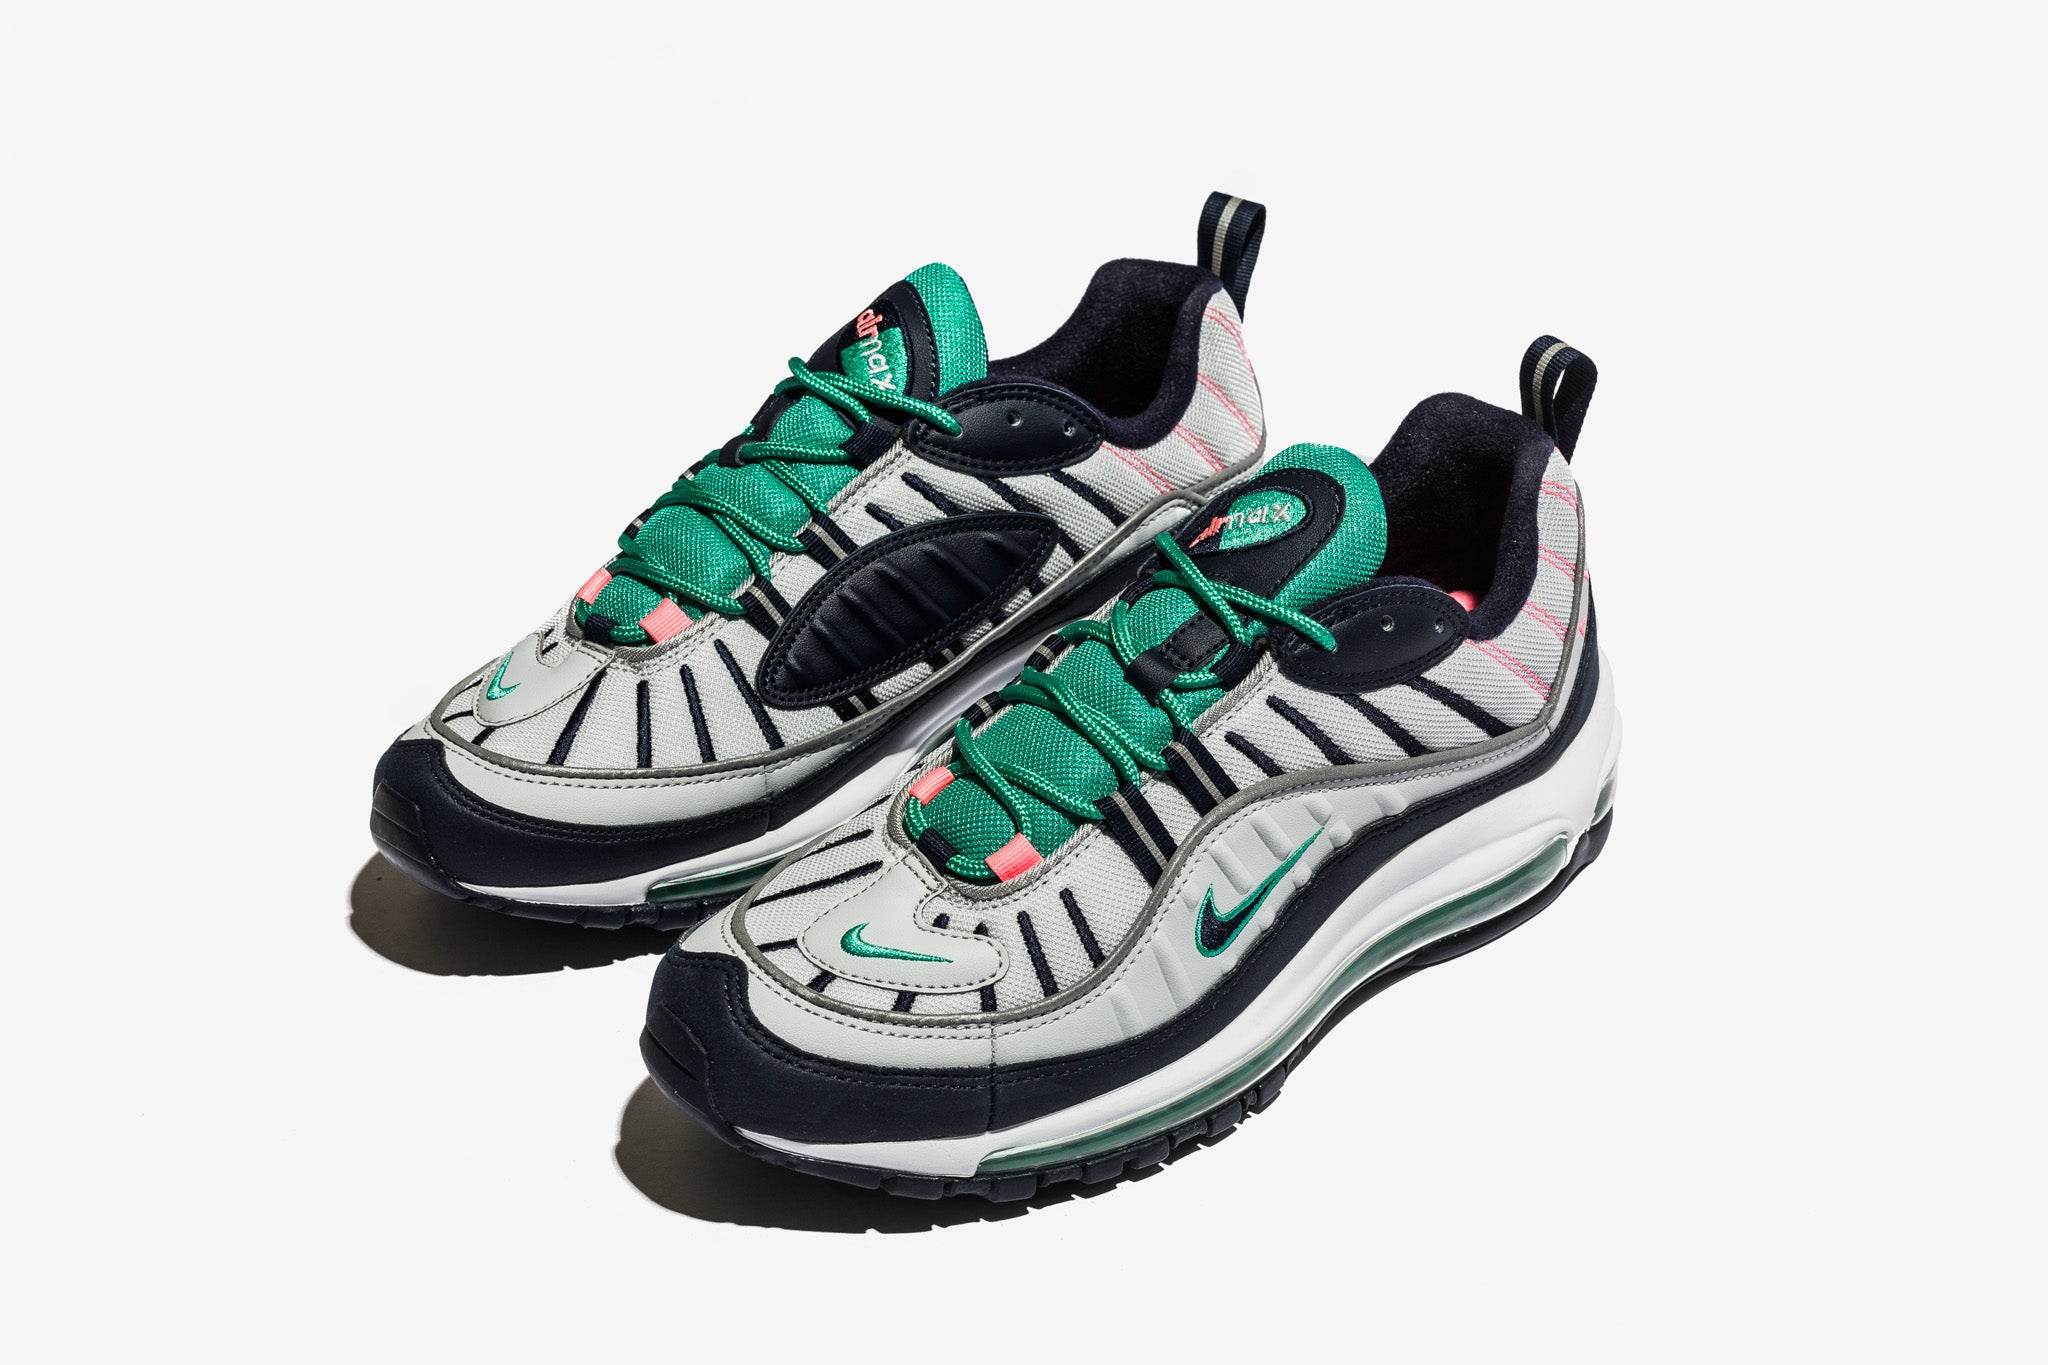 1de472243a The Air Max 98 rocks the Miami South Beach colour blocking and continues  onward with the retro Air Max runner rollout for 2018. The upper is  comprised of ...